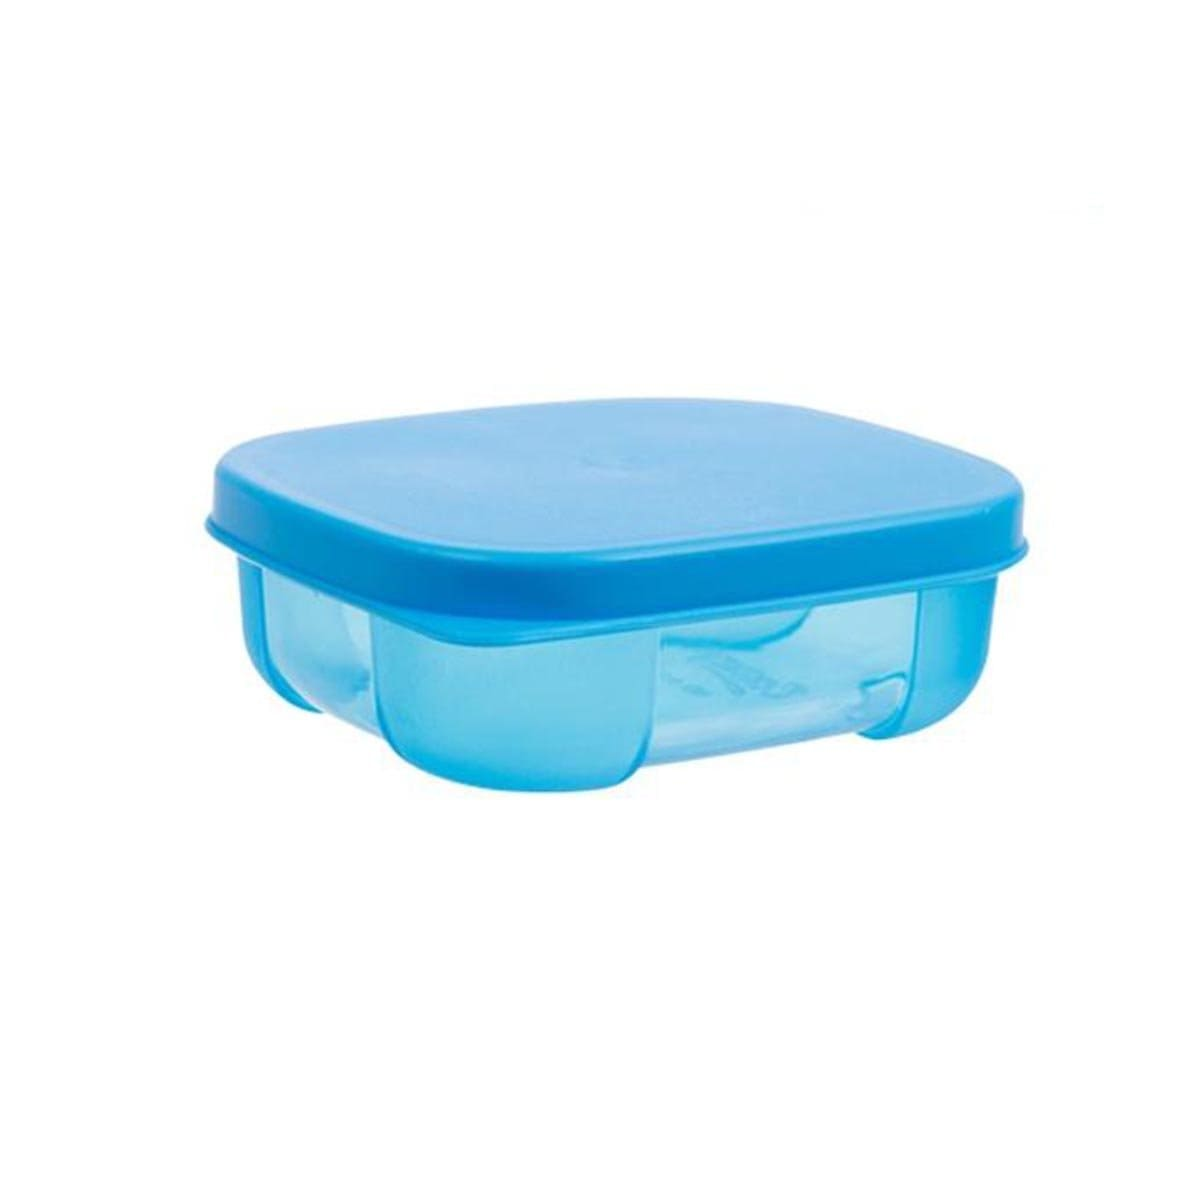 0121 Food Container 0.23L